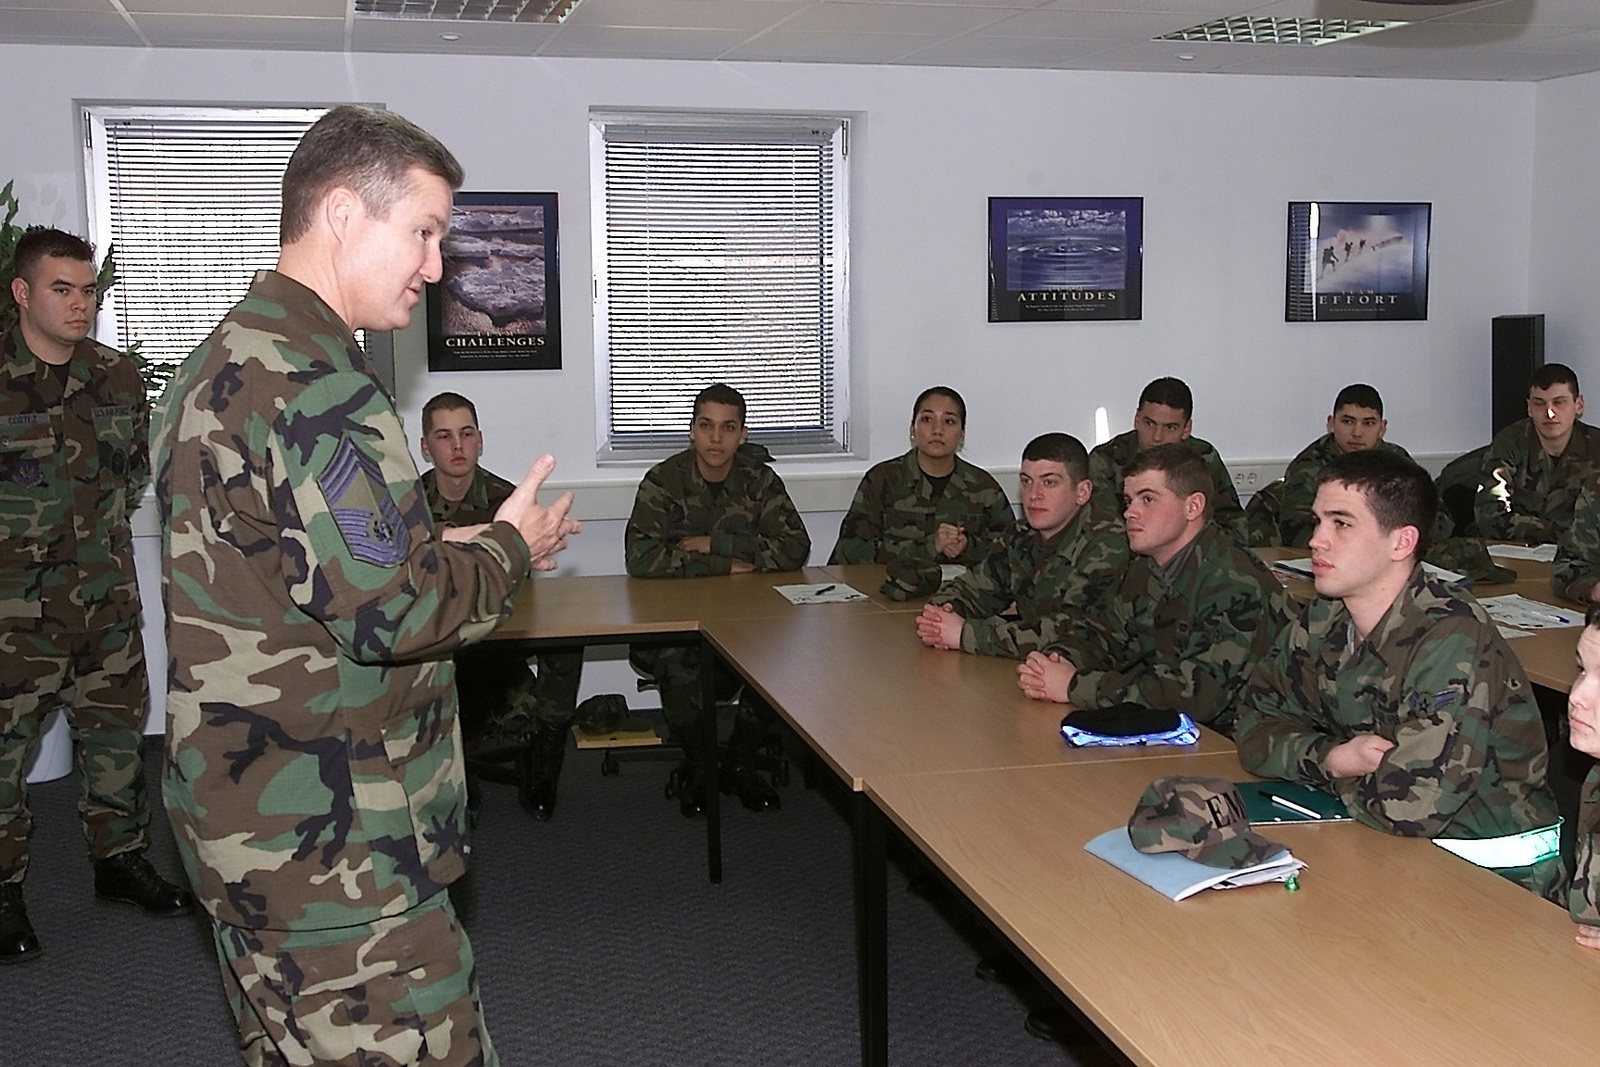 US Air Force (USAF) CHIEF MASTER Sergeant of the Air Force (CMSAF) Gerald Murray speaks to students at the Pitsenbarger AIRMAN Leadership School during a visit to Spangdahlem Air Base, Germany, where he discussed issues important to enlisted personnel